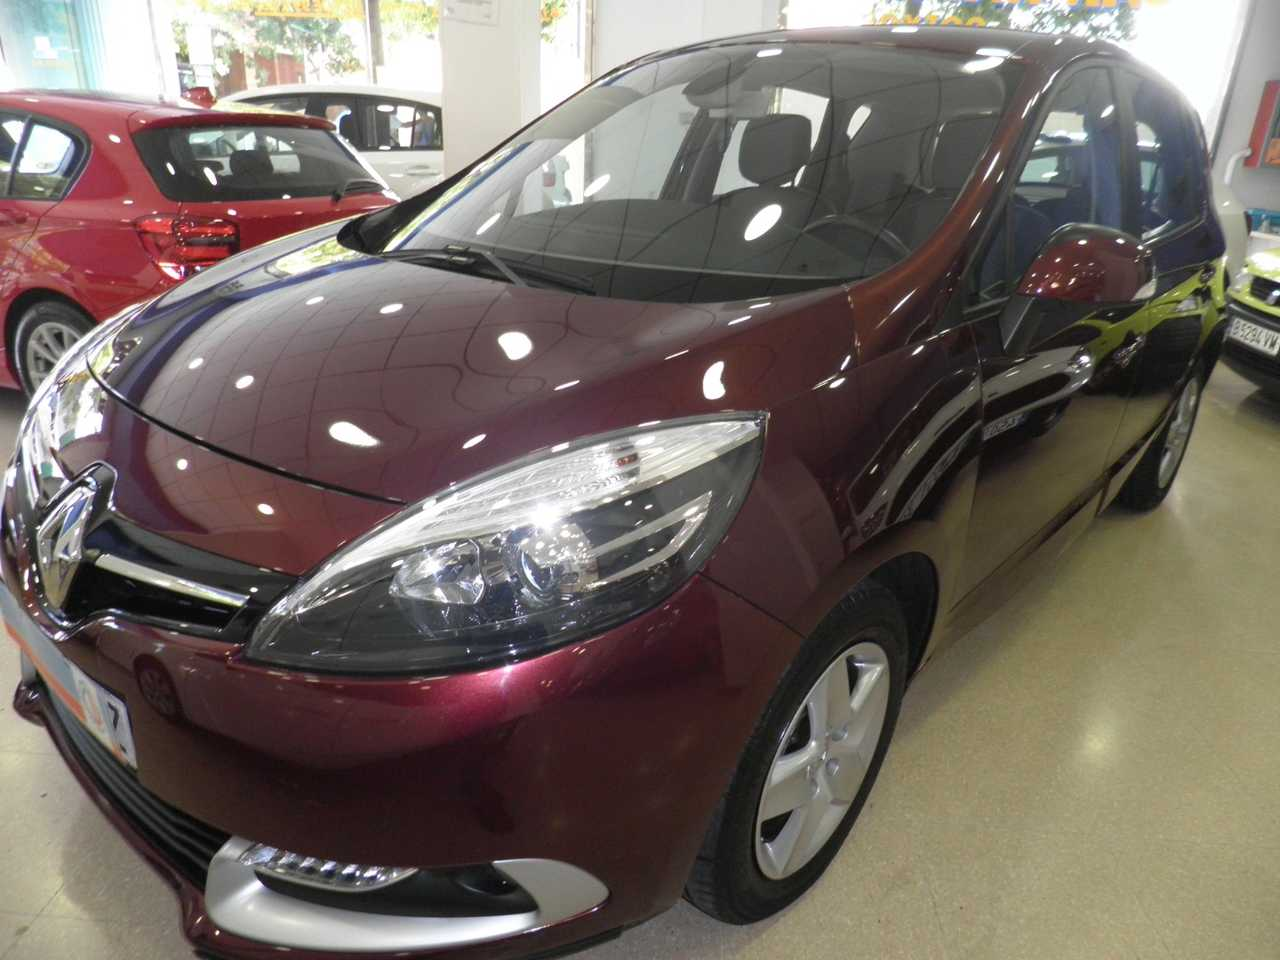 Renault Scénic 1.2 TCE  ENERGY/LIFE *SOLO 27.000 KM*  - Foto 1